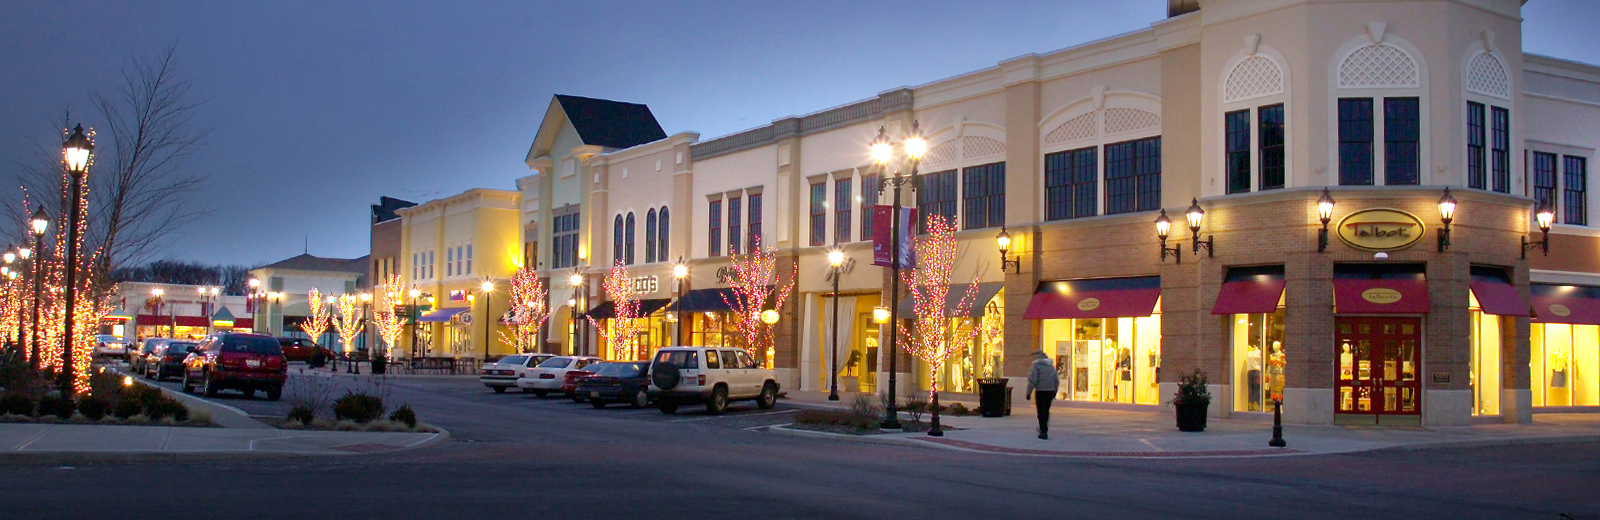 Town center levis commons project rudolph libbe group for Jewelry store levis commons perrysburg